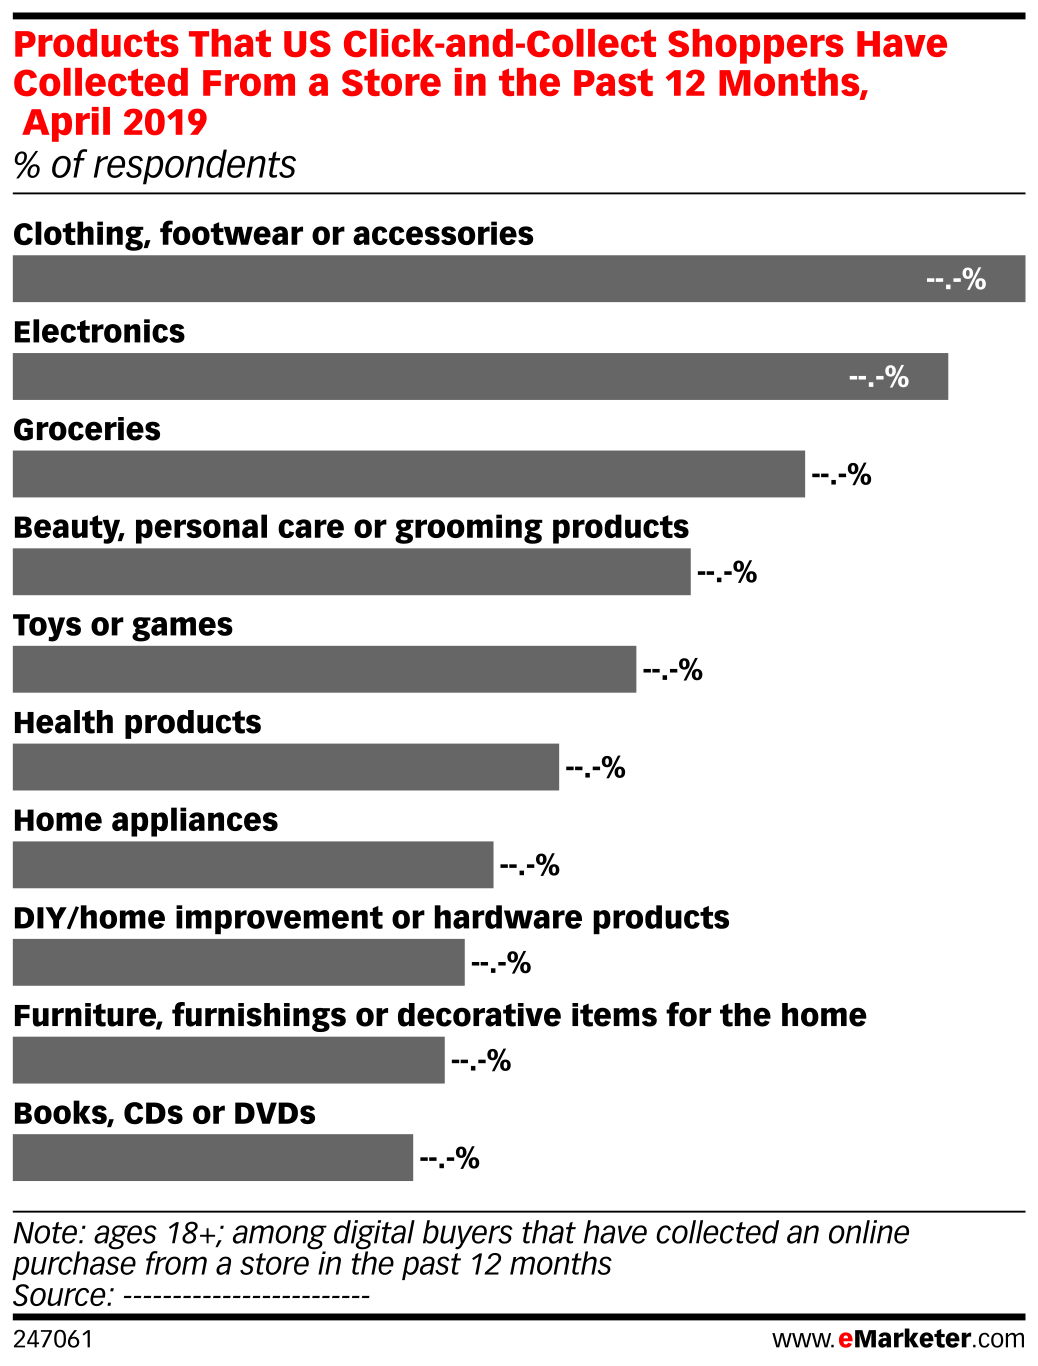 Products That US Click-and-Collect Shoppers Have Collected From a Store in the Past 12 Months, April 2019 (% of respondents)